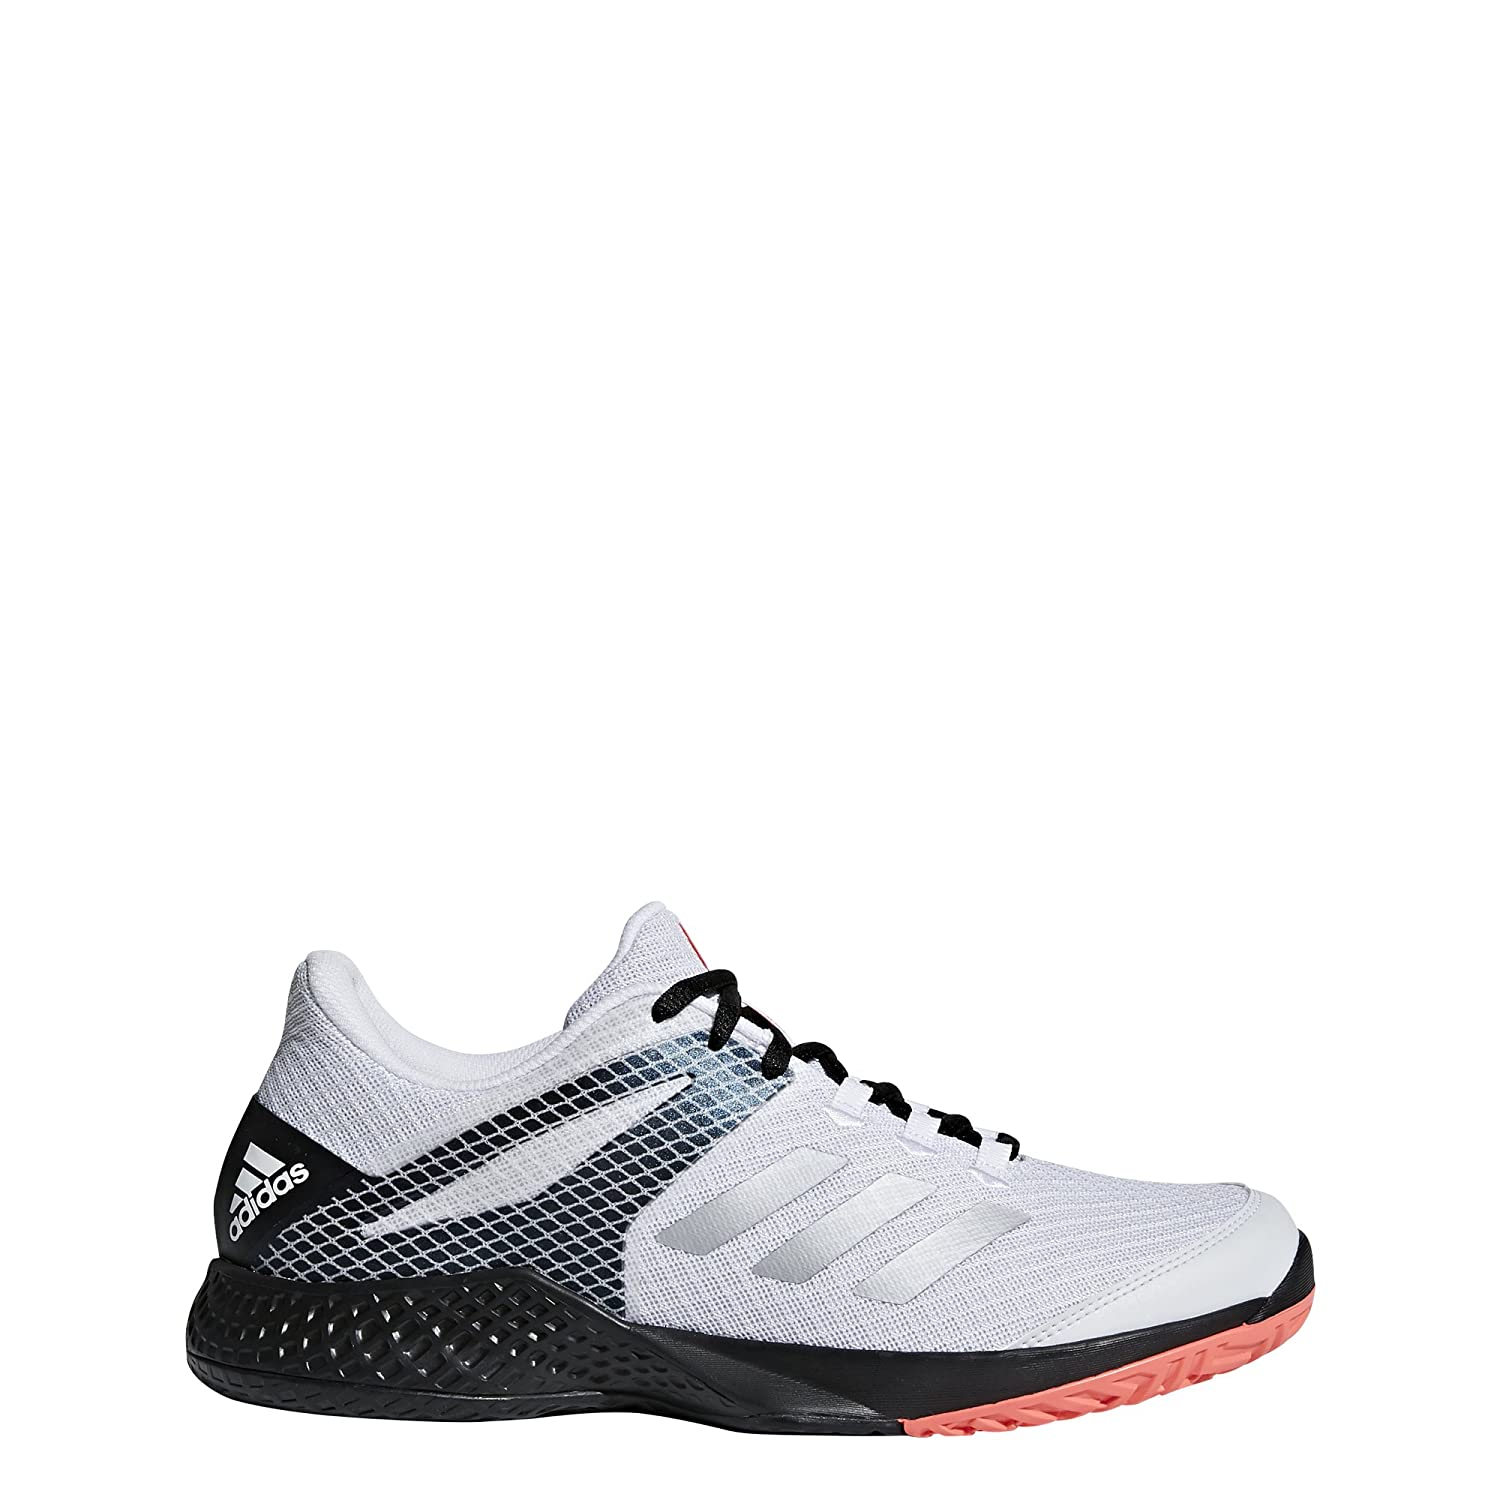 adidas Adizero Club 2 Men's Tennis B078PHC4G3 8 D(M) US|White/Matte Silver/Black